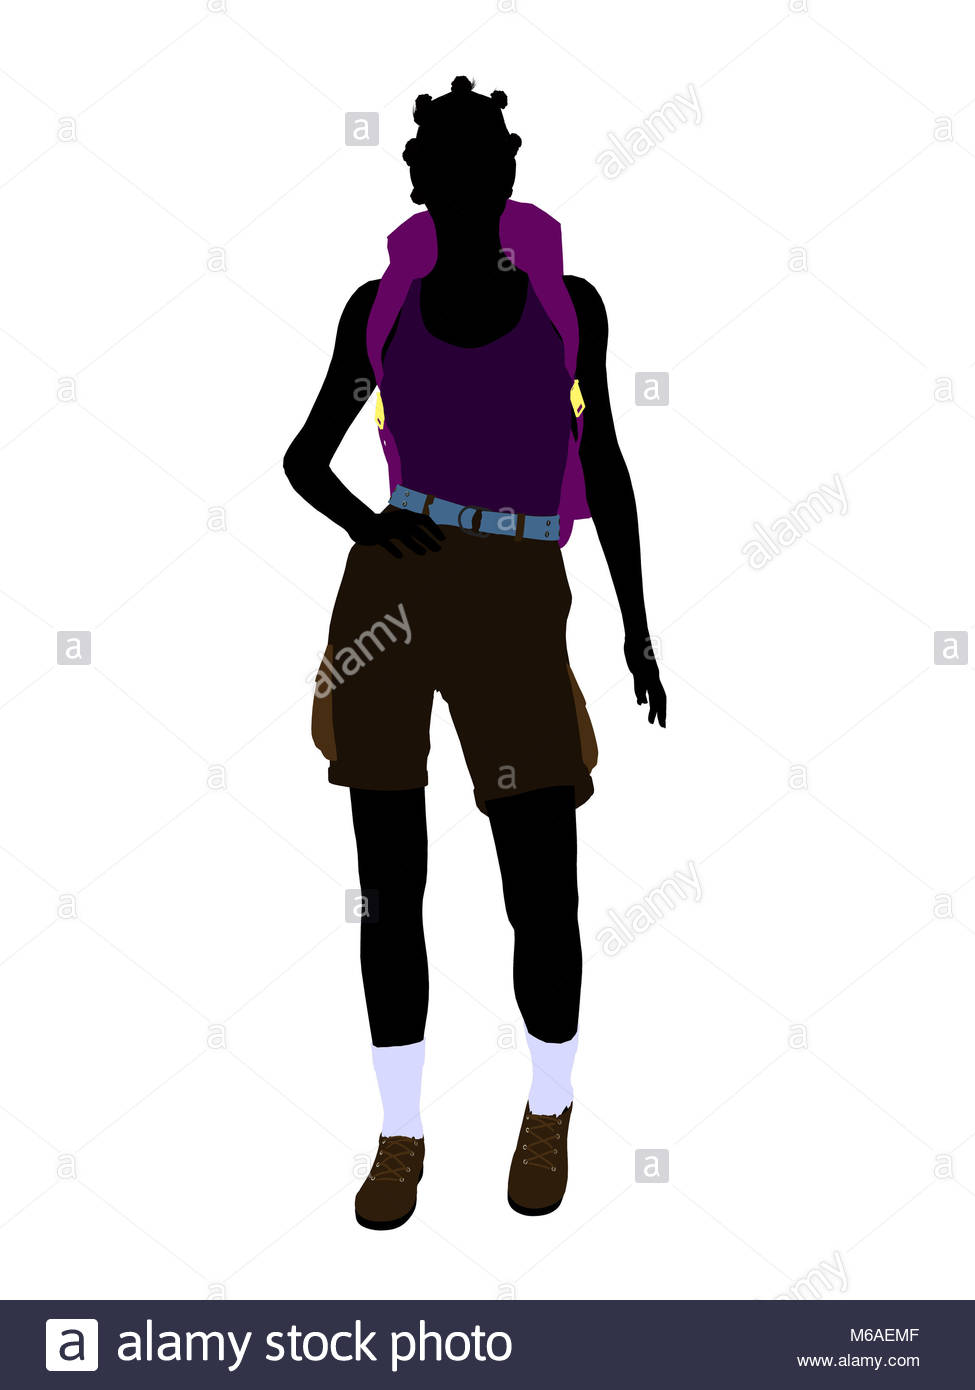 975x1390 African American Girl Illustration Silhouette Stock Photos